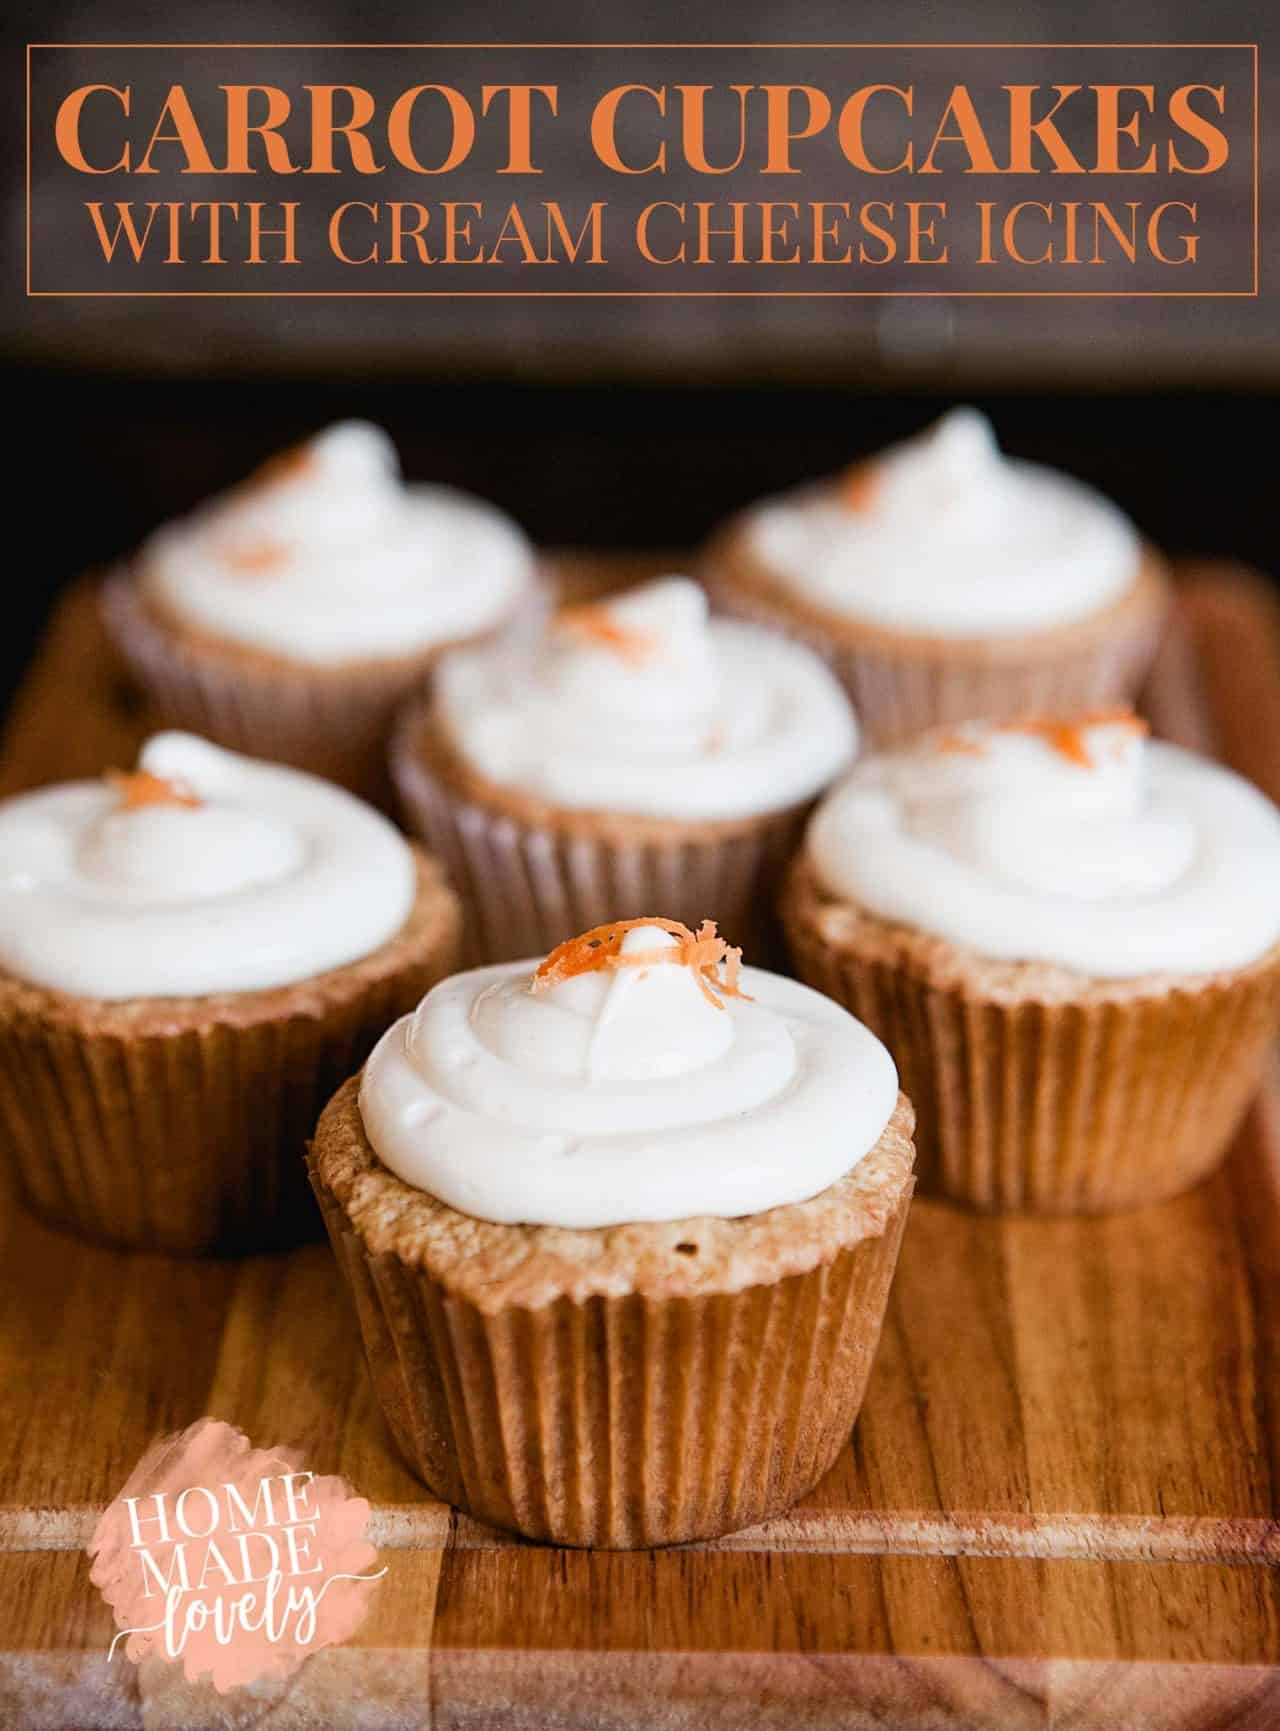 carrot cupcakes with cream cheese icing and carrots